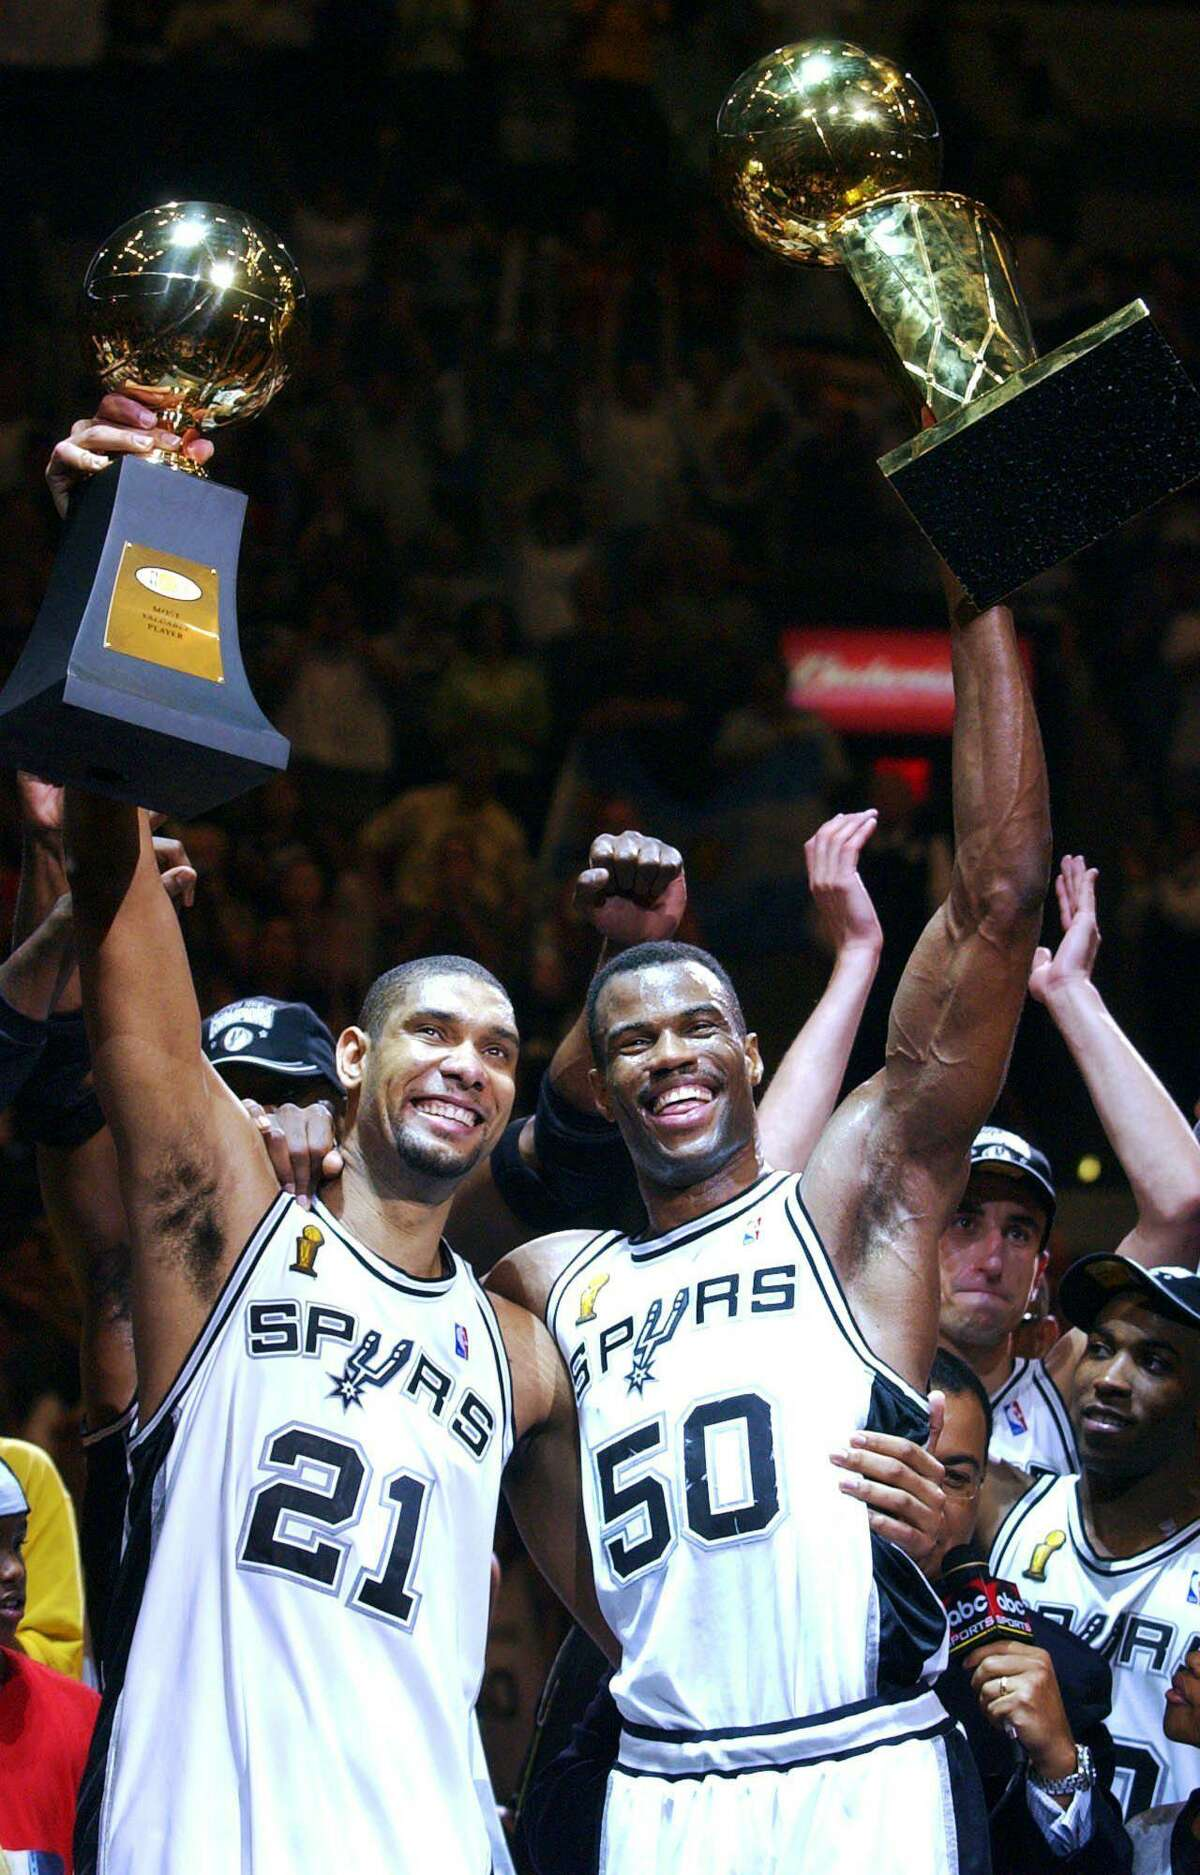 FILE - In this June 15, 2003 file photo, San Antonio Spurs players Tim Duncan (21) holds his MVP trophy while teammate David Robinson (50) holds the championship trophy after the Spurs beat the New Jersey Nets 88-77 to win the NBA Championship in Game 6 of the NBA Finals in San Antonio. Duncan announced his retirement on Monday, July 11, 2016, after 19 seasons, five championships, two MVP awards and 15 All-Star appearances. It marks the end of an era for the Spurs and the NBA. (AP Photo/Eric Gay, File)